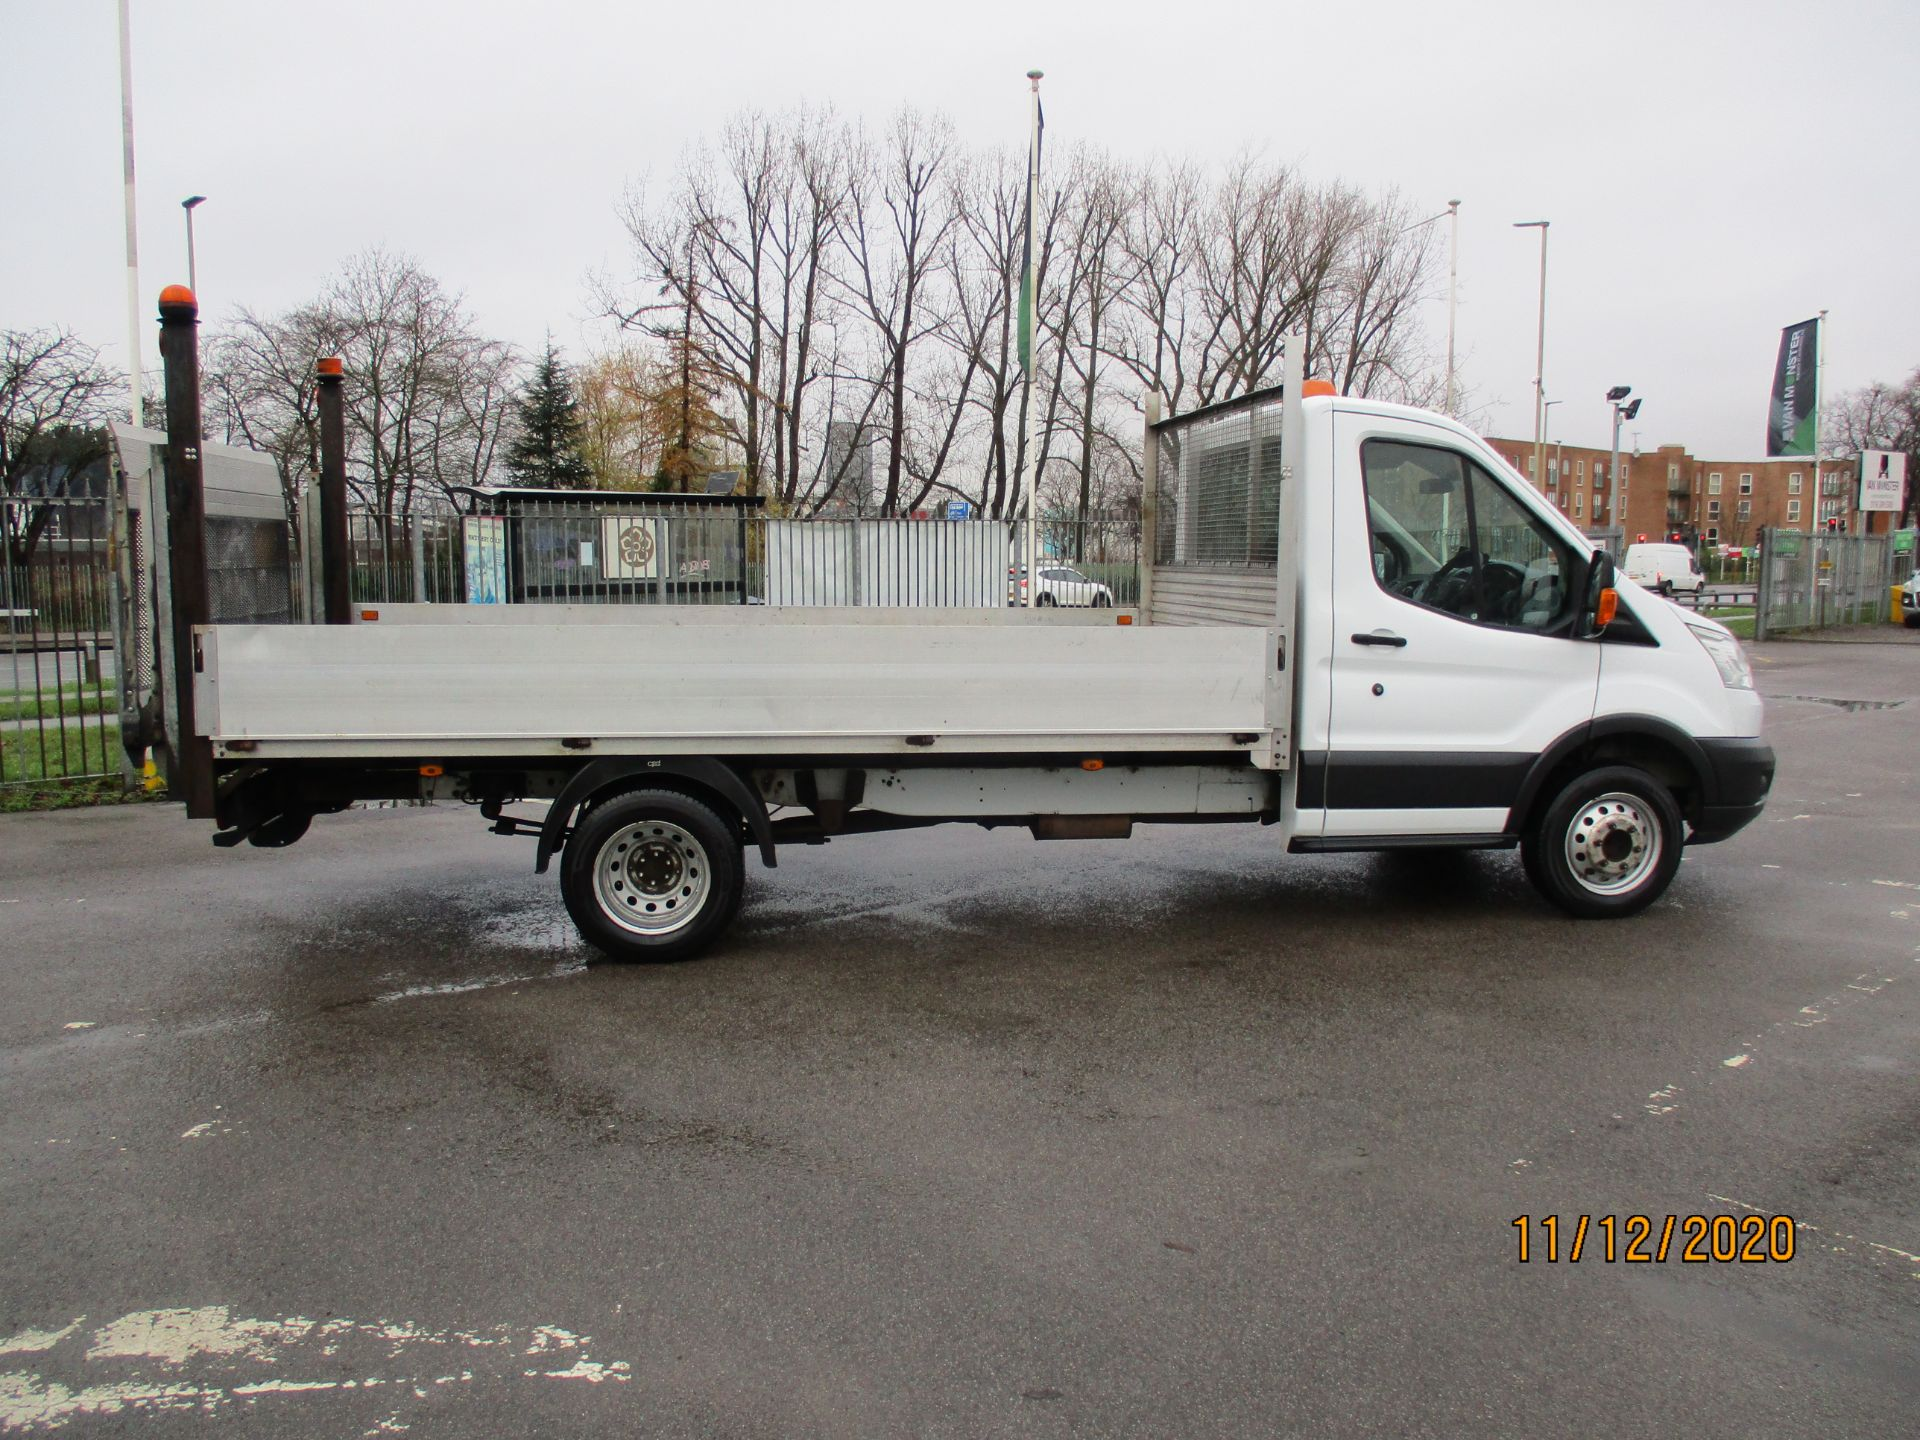 2016 Ford Transit 2.2 Tdci 125Ps Chassis Cab (FL66FAK) Image 8